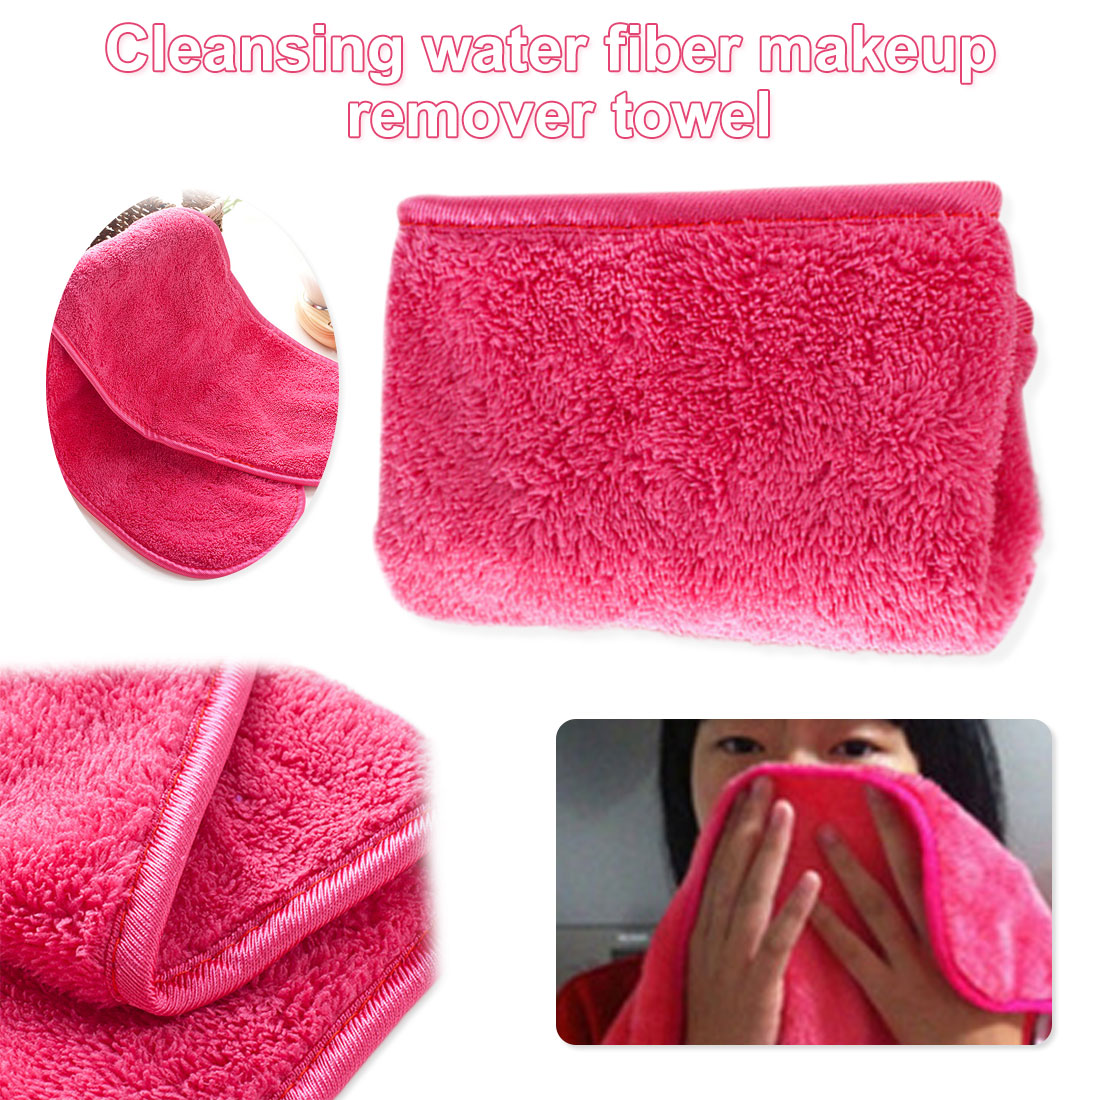 Makeup Remover 40*18CM Microfiber Cloth Pads Remover Towel Face Cleansing Makeup Cleansing Towel